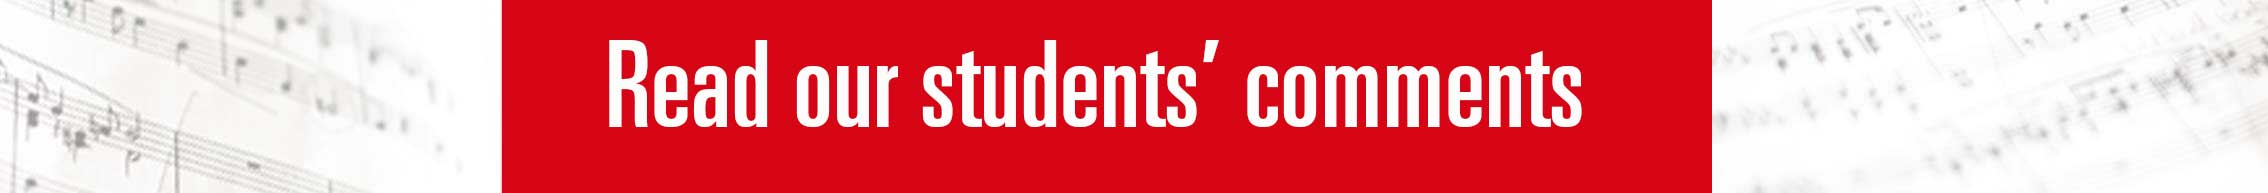 Read our students' comments